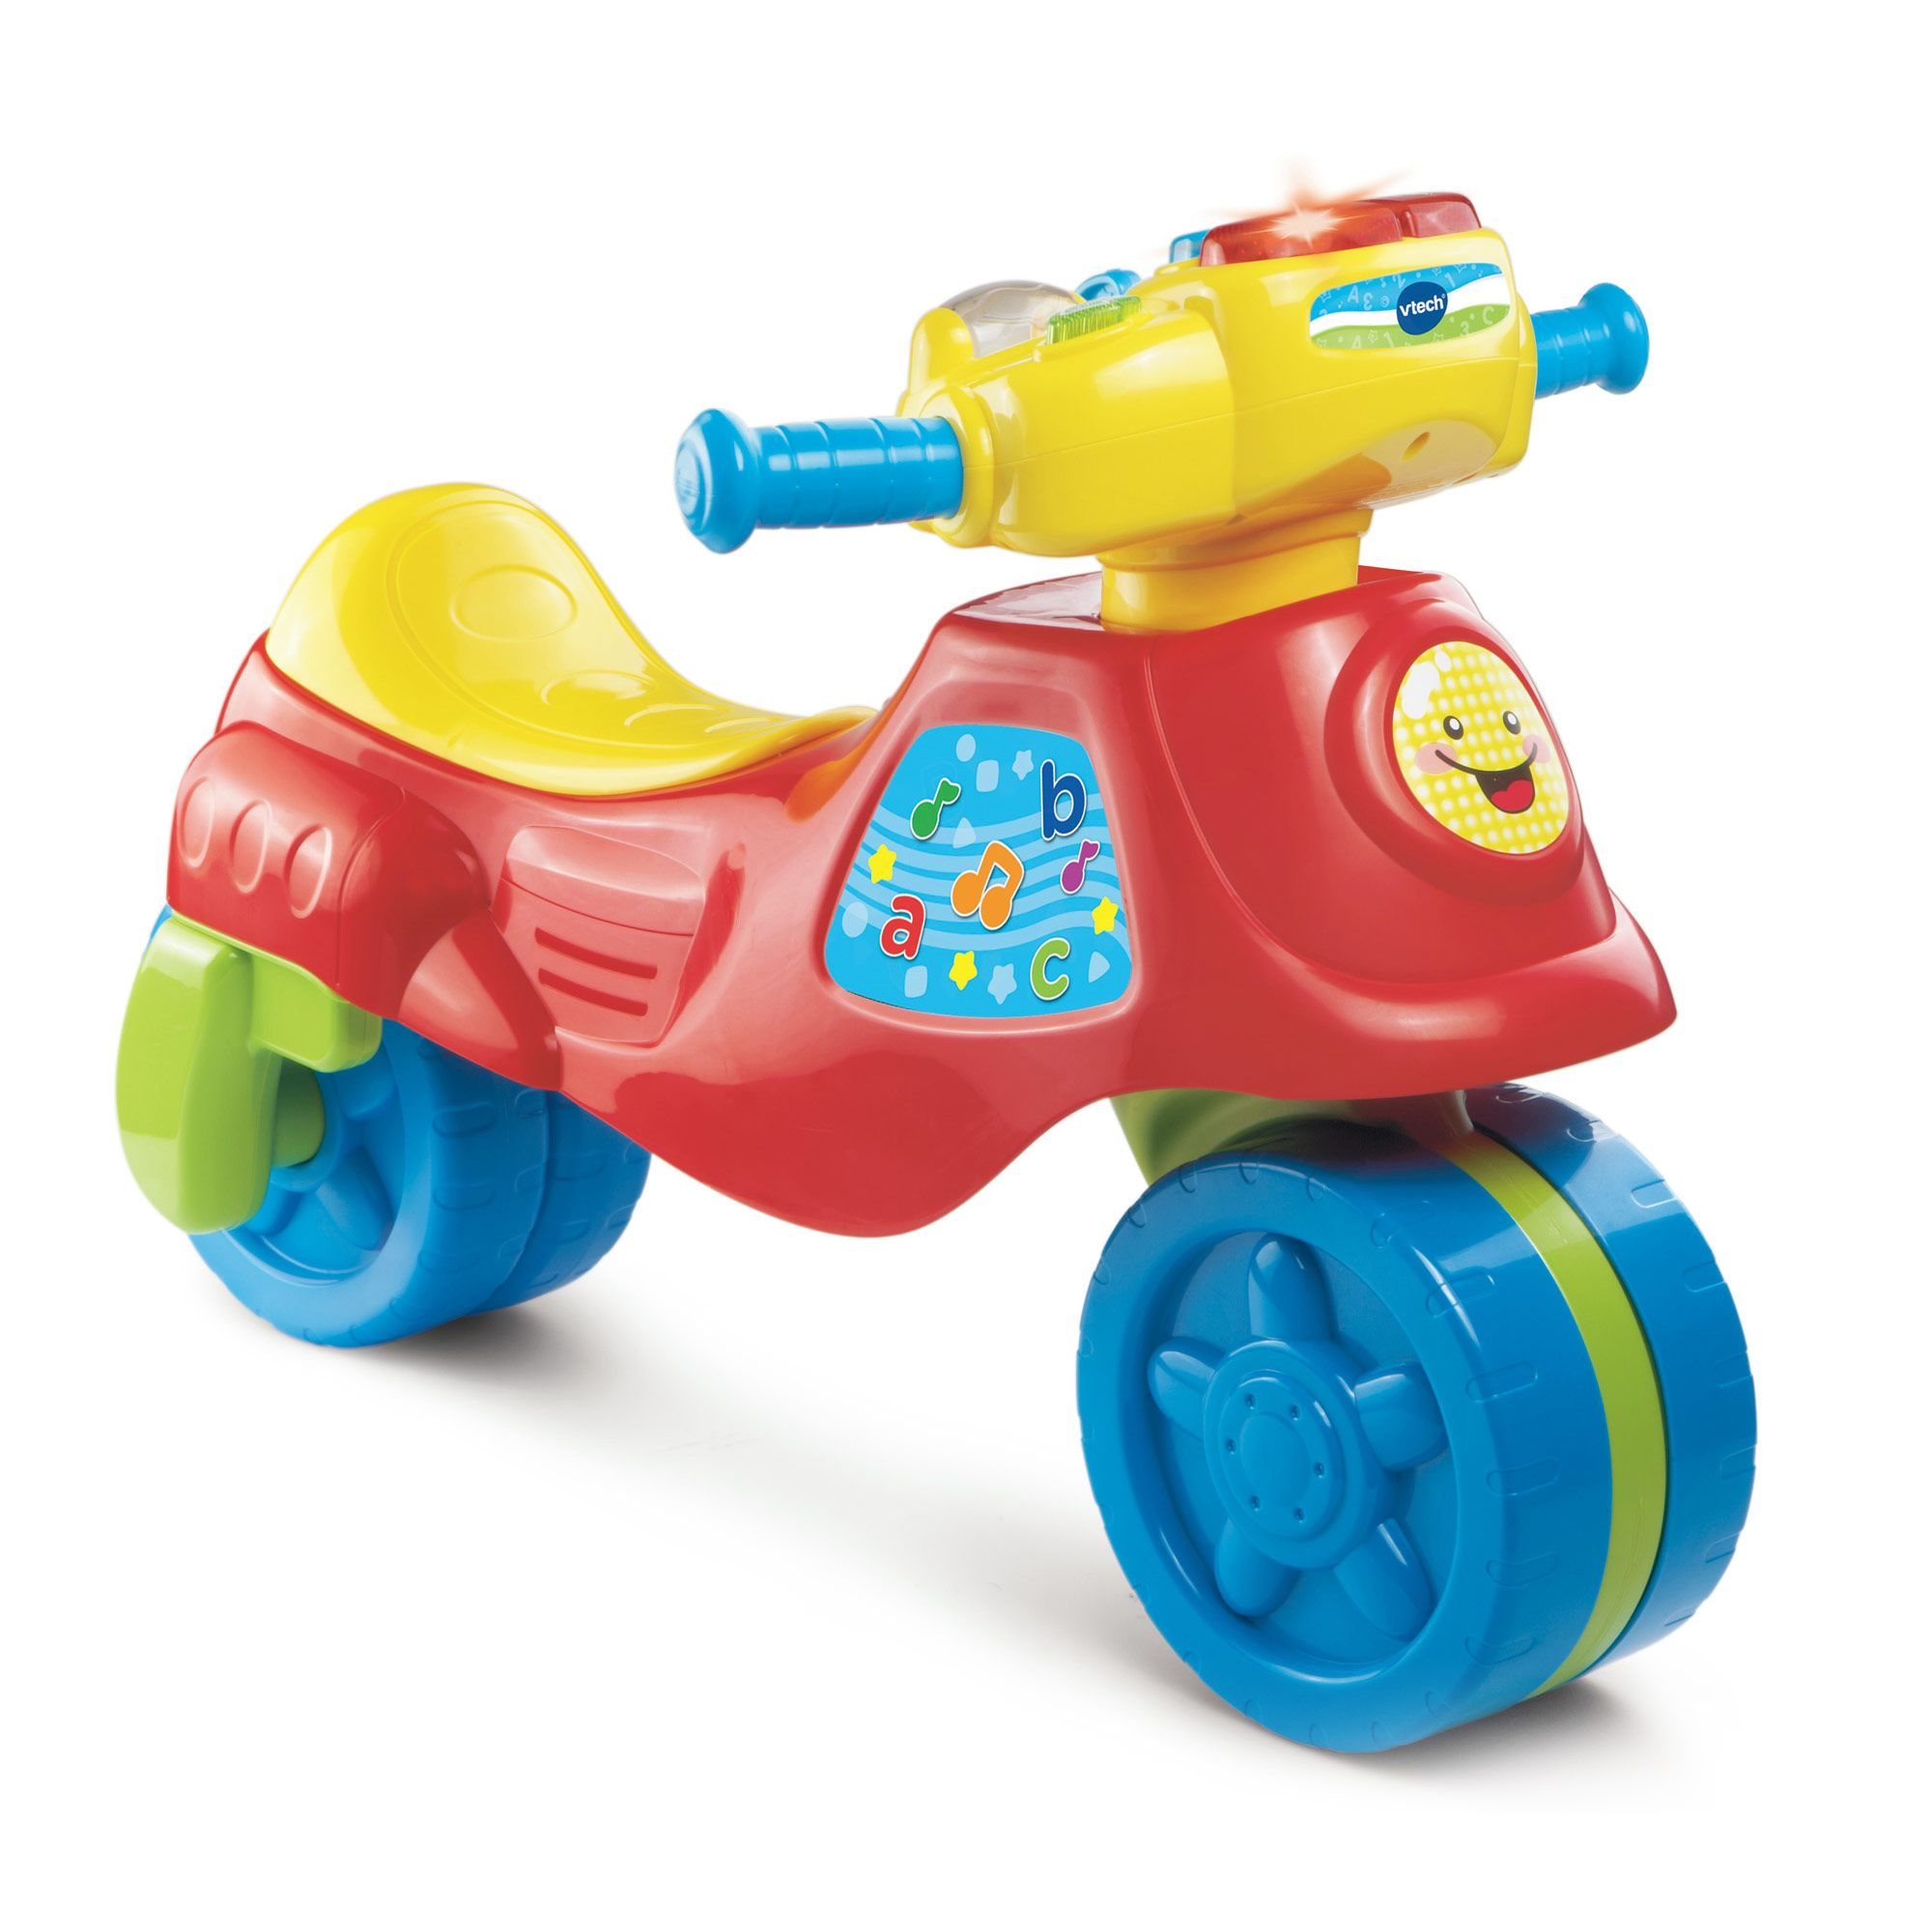 Image of Vtech 2-in-1 Tri To Bike